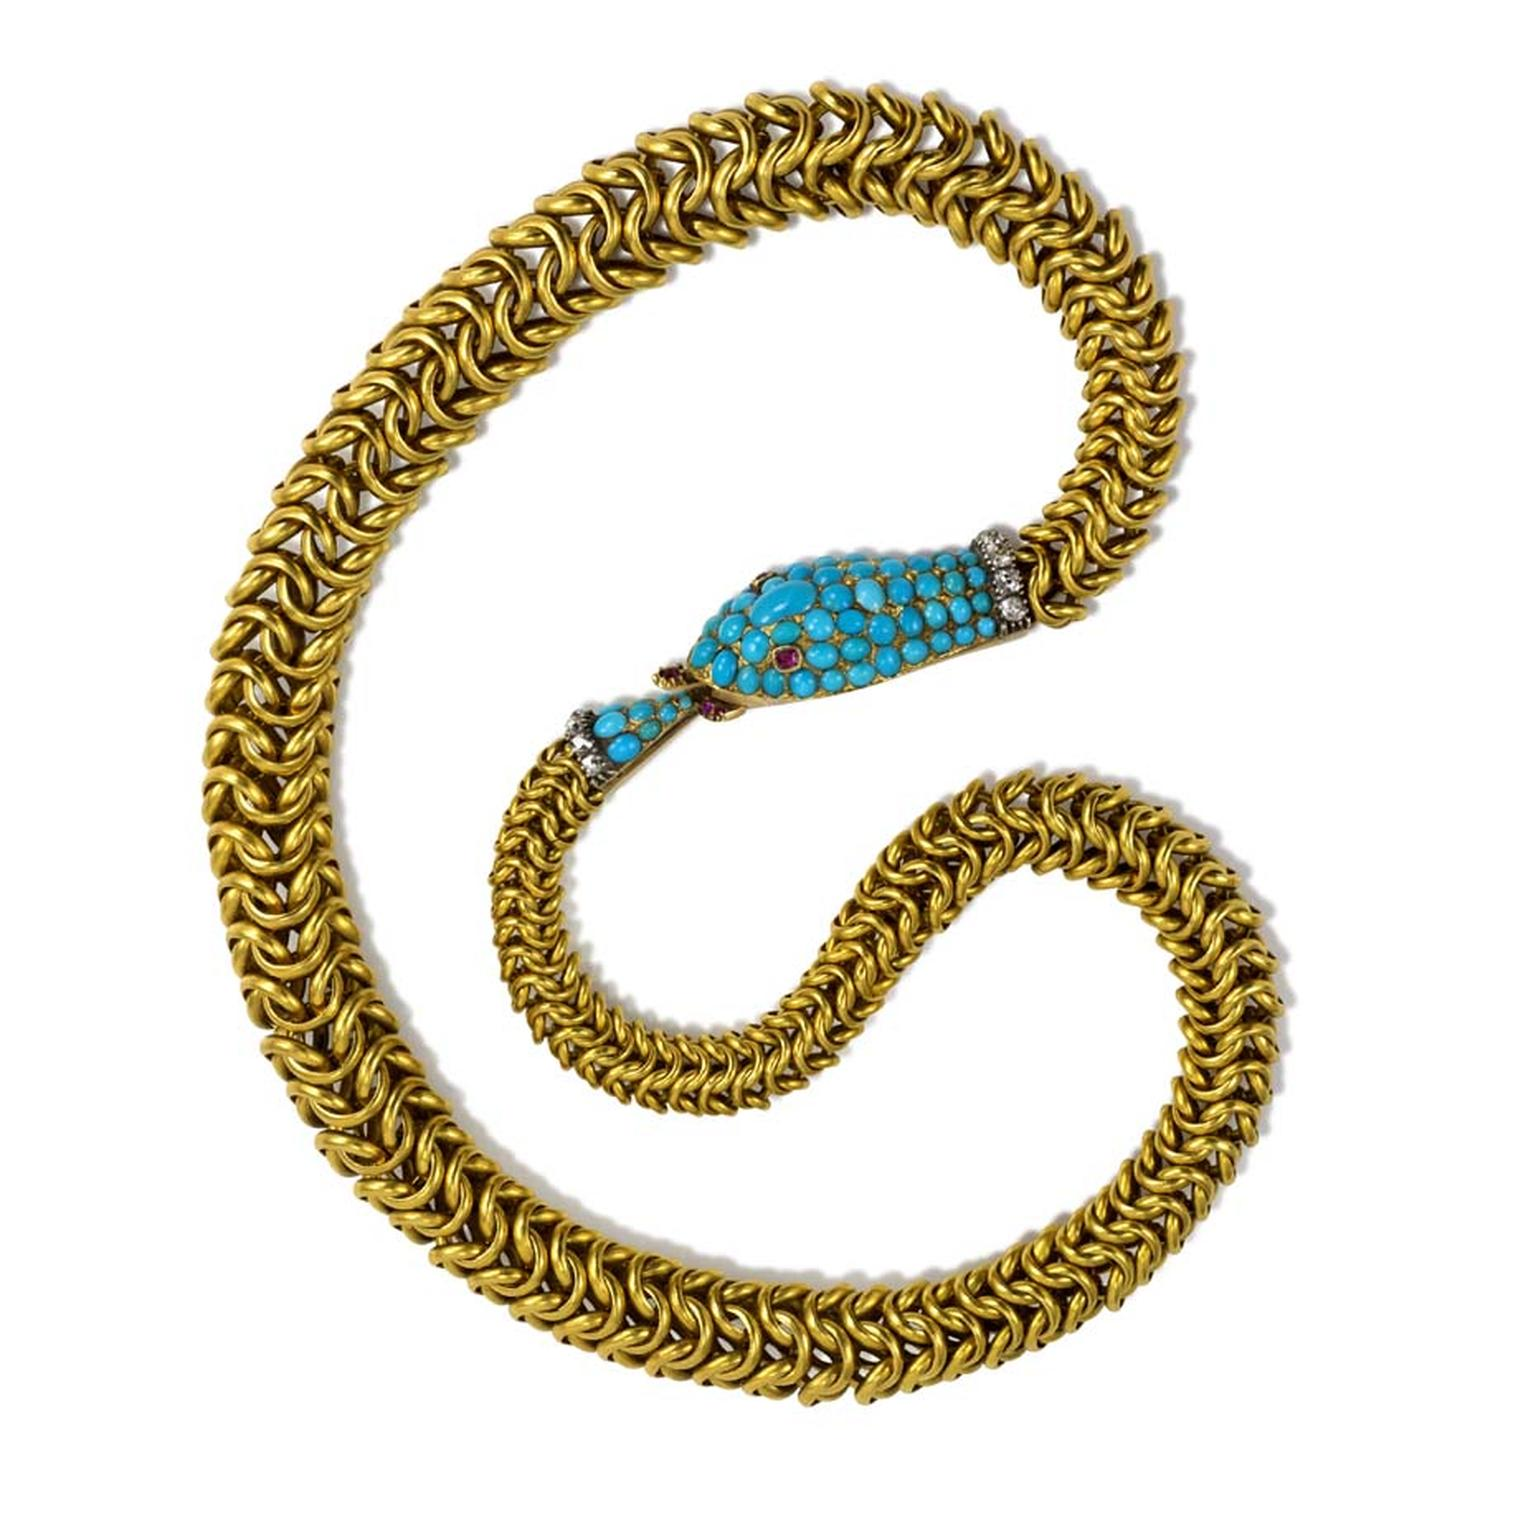 An antique gold box chain in the form of an Ouroboros snake with a pavé turquoise head and tail with diamonds and rubies, circa 1870. Exhibited by Kentshire.